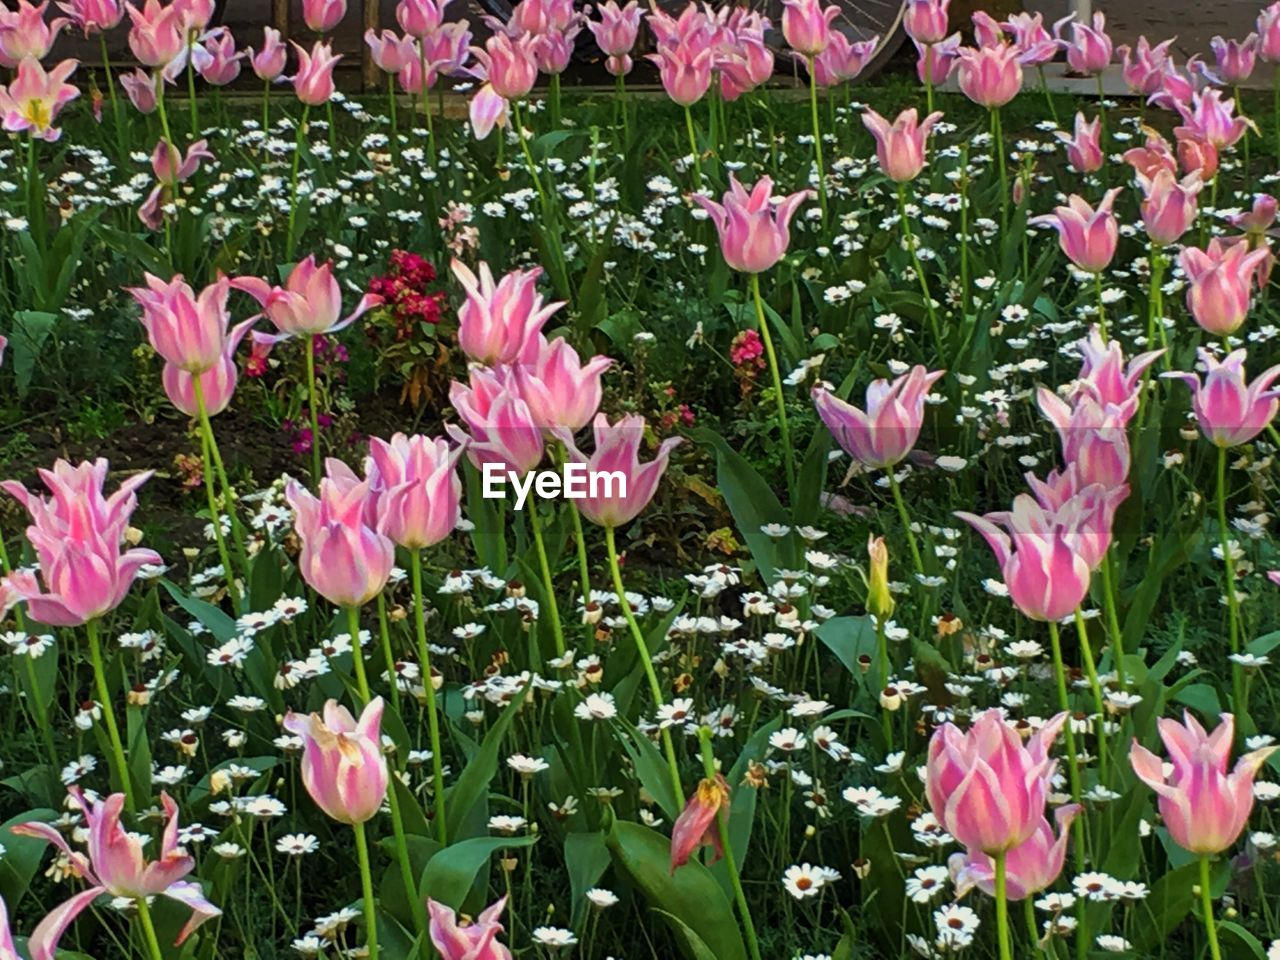 flowering plant, flower, pink color, freshness, plant, beauty in nature, vulnerability, petal, fragility, growth, close-up, nature, flower head, inflorescence, no people, day, green color, field, land, plant part, outdoors, springtime, flowerbed